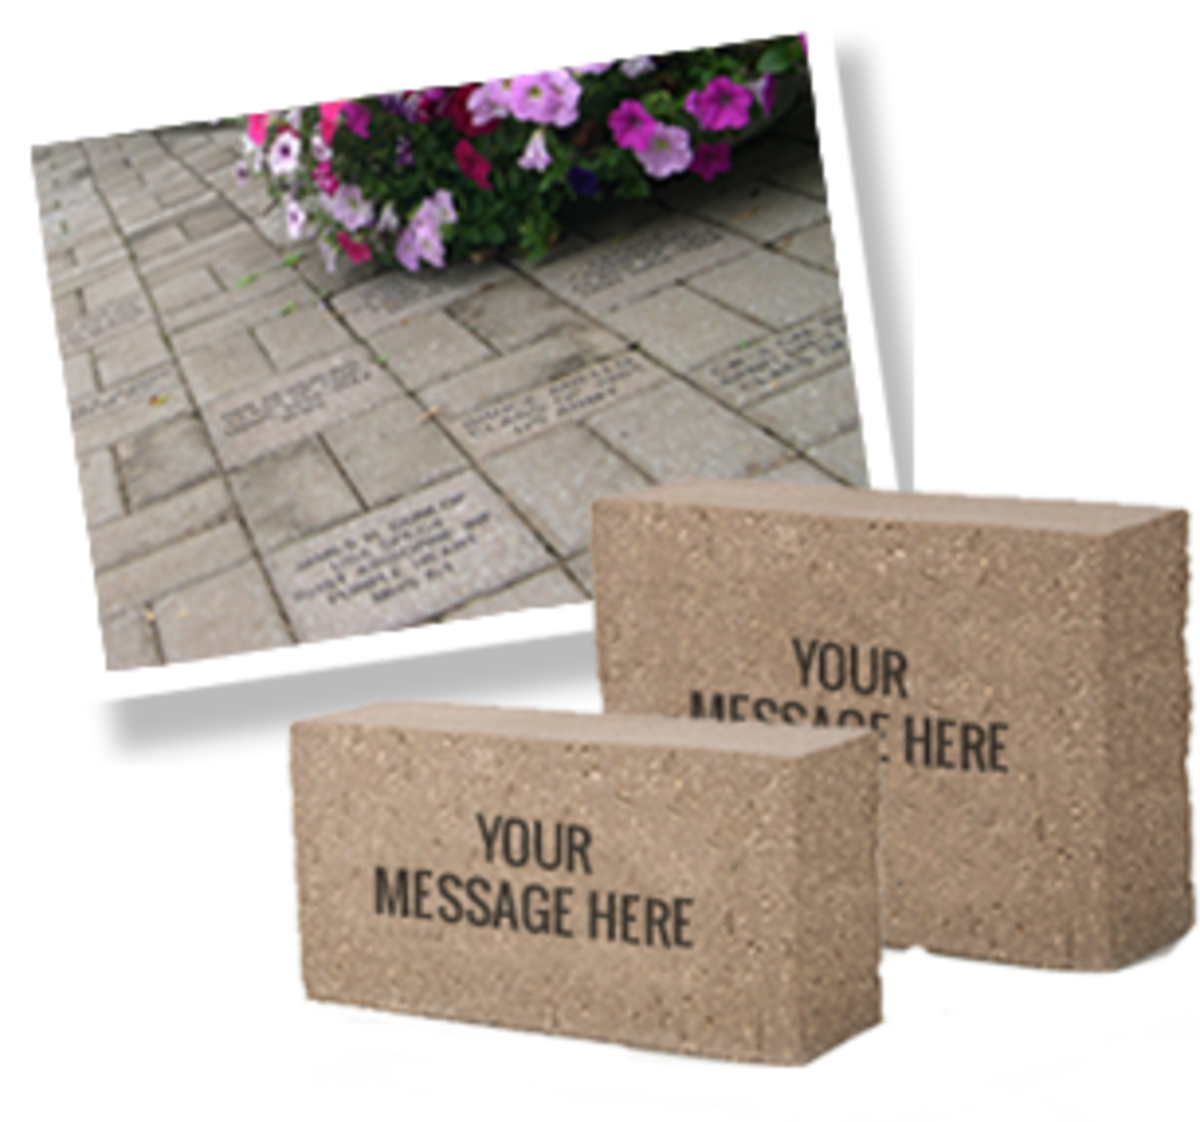 Engraved personalized brick graphic used to promote project